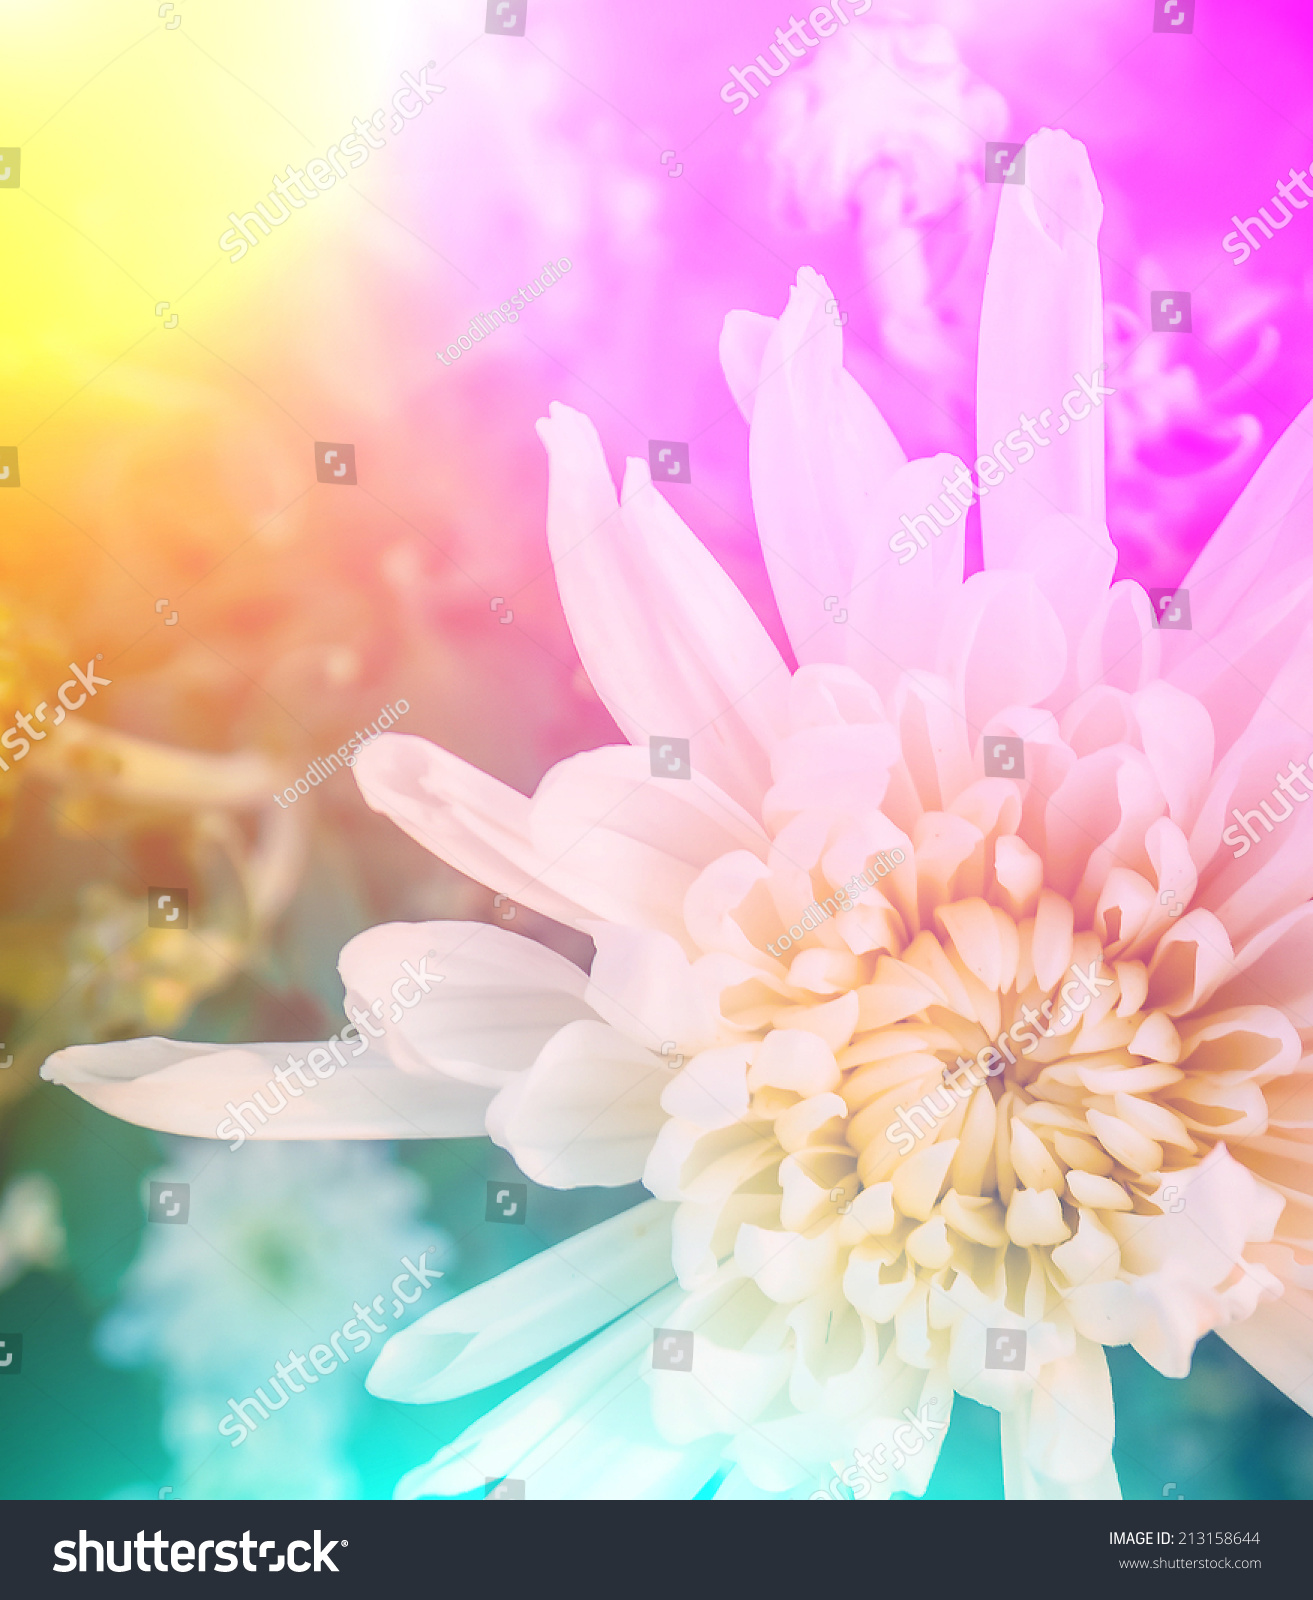 Such Gorgeous Colors And Softness: Vivid Colors Beautiful Floral In Soft Style.For Art